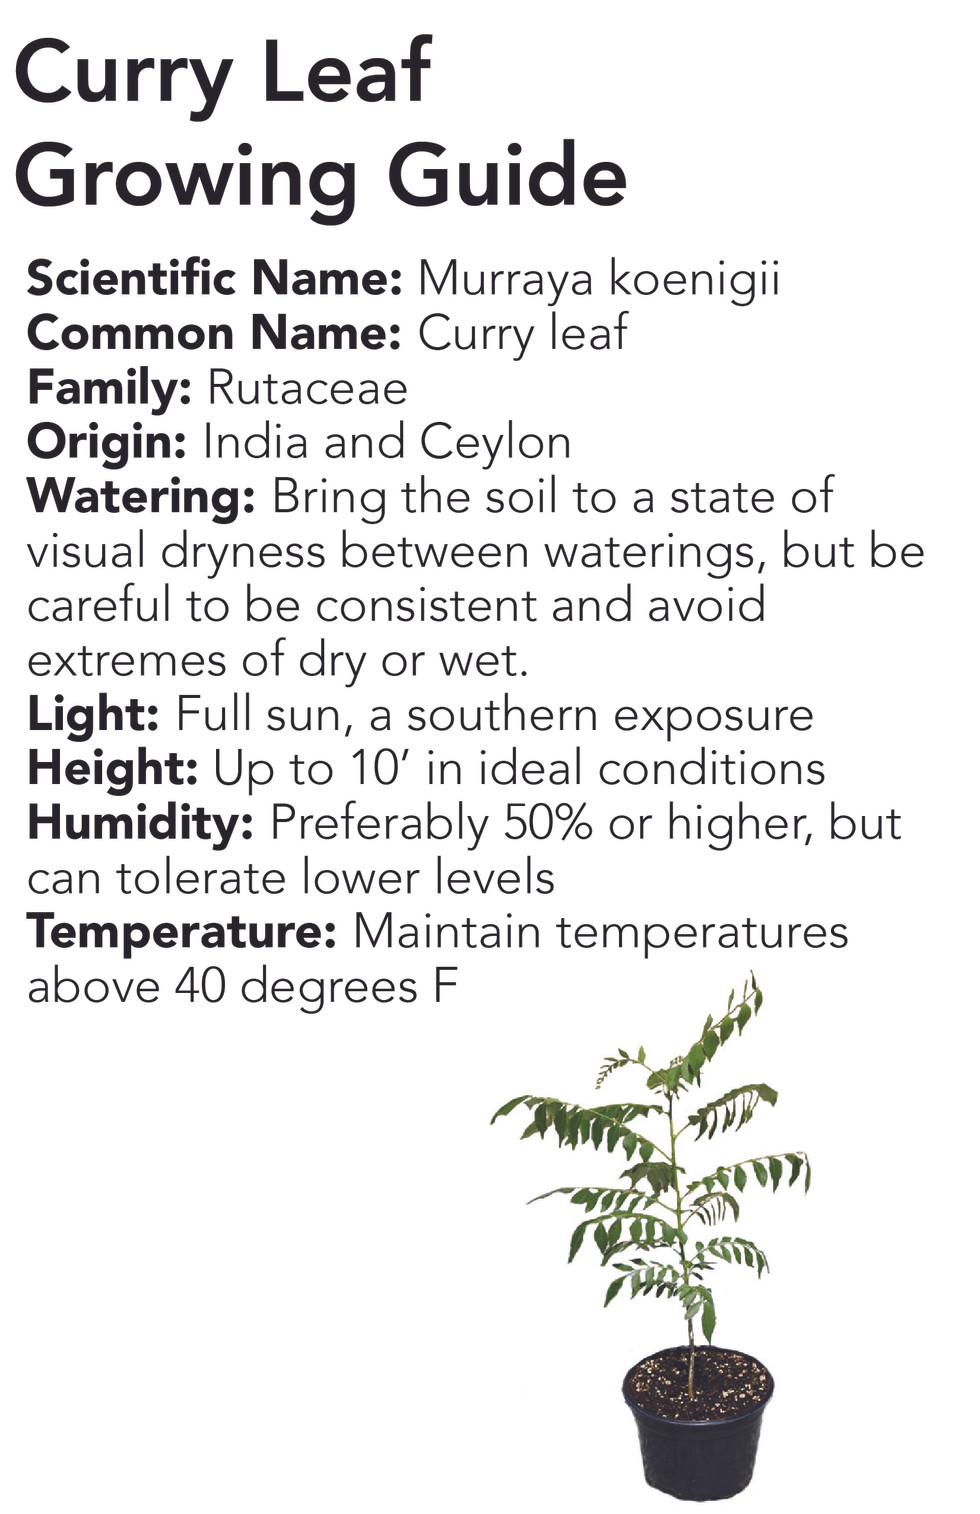 Curry Leaf Growing Guide